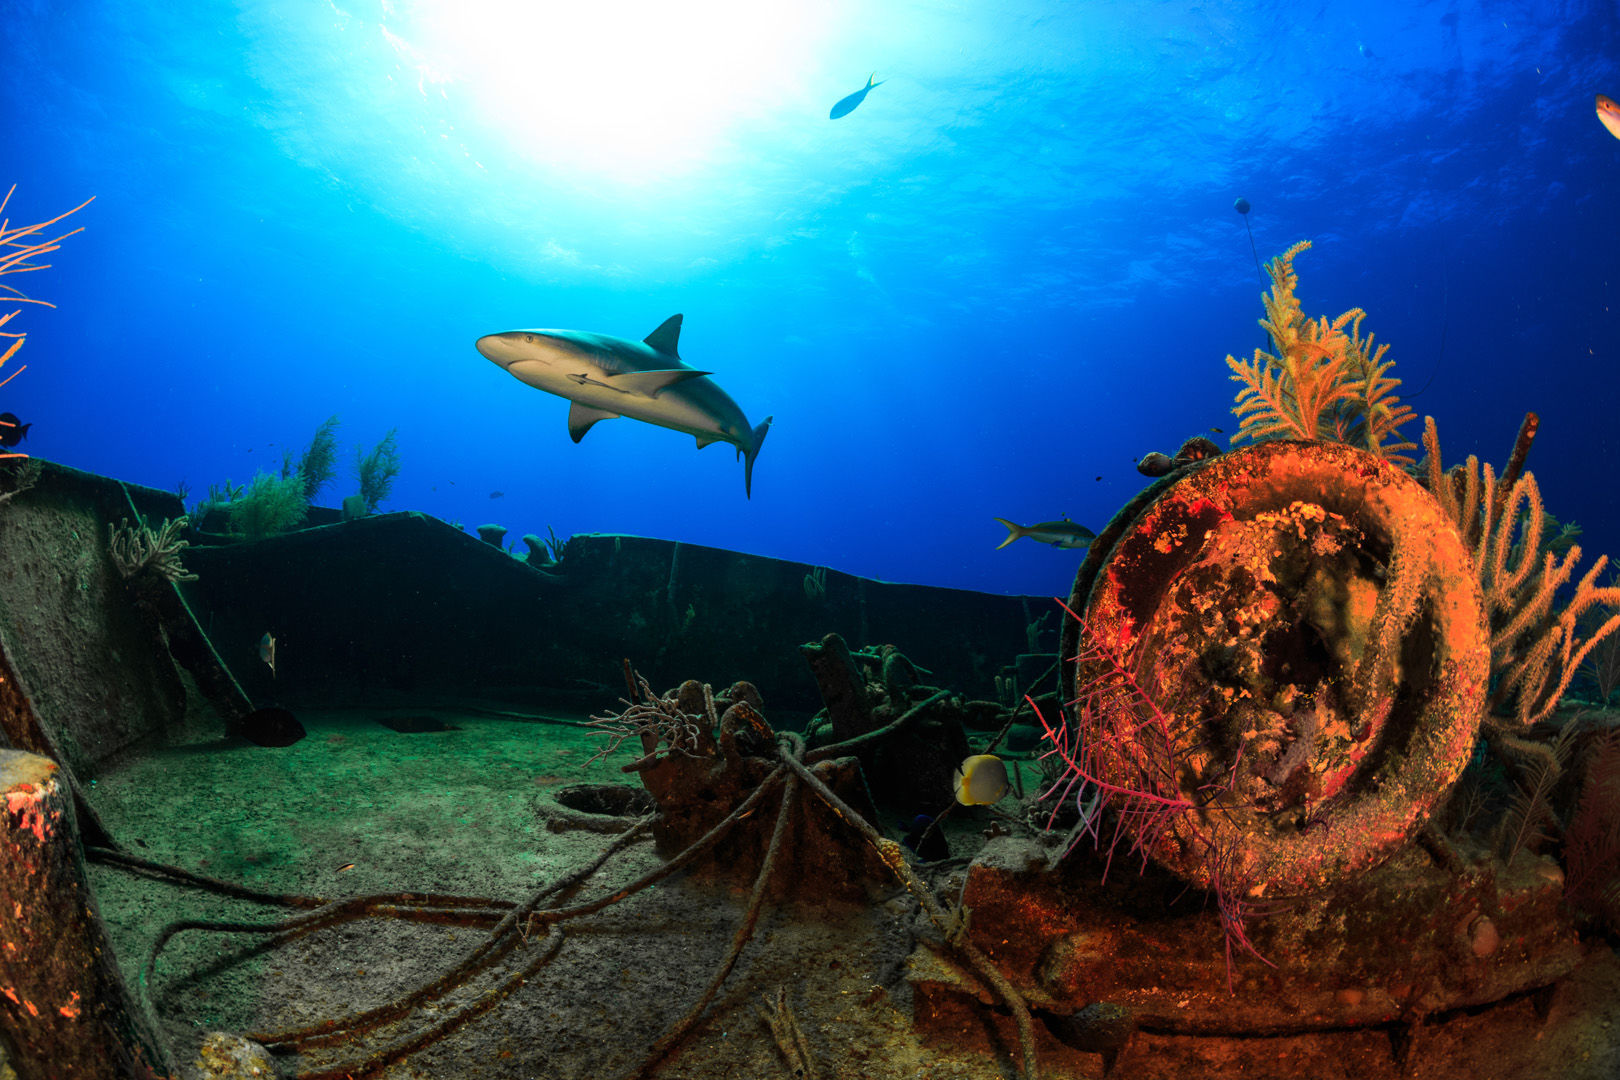 Reef shark swims over a ship wreck in the Bahamas